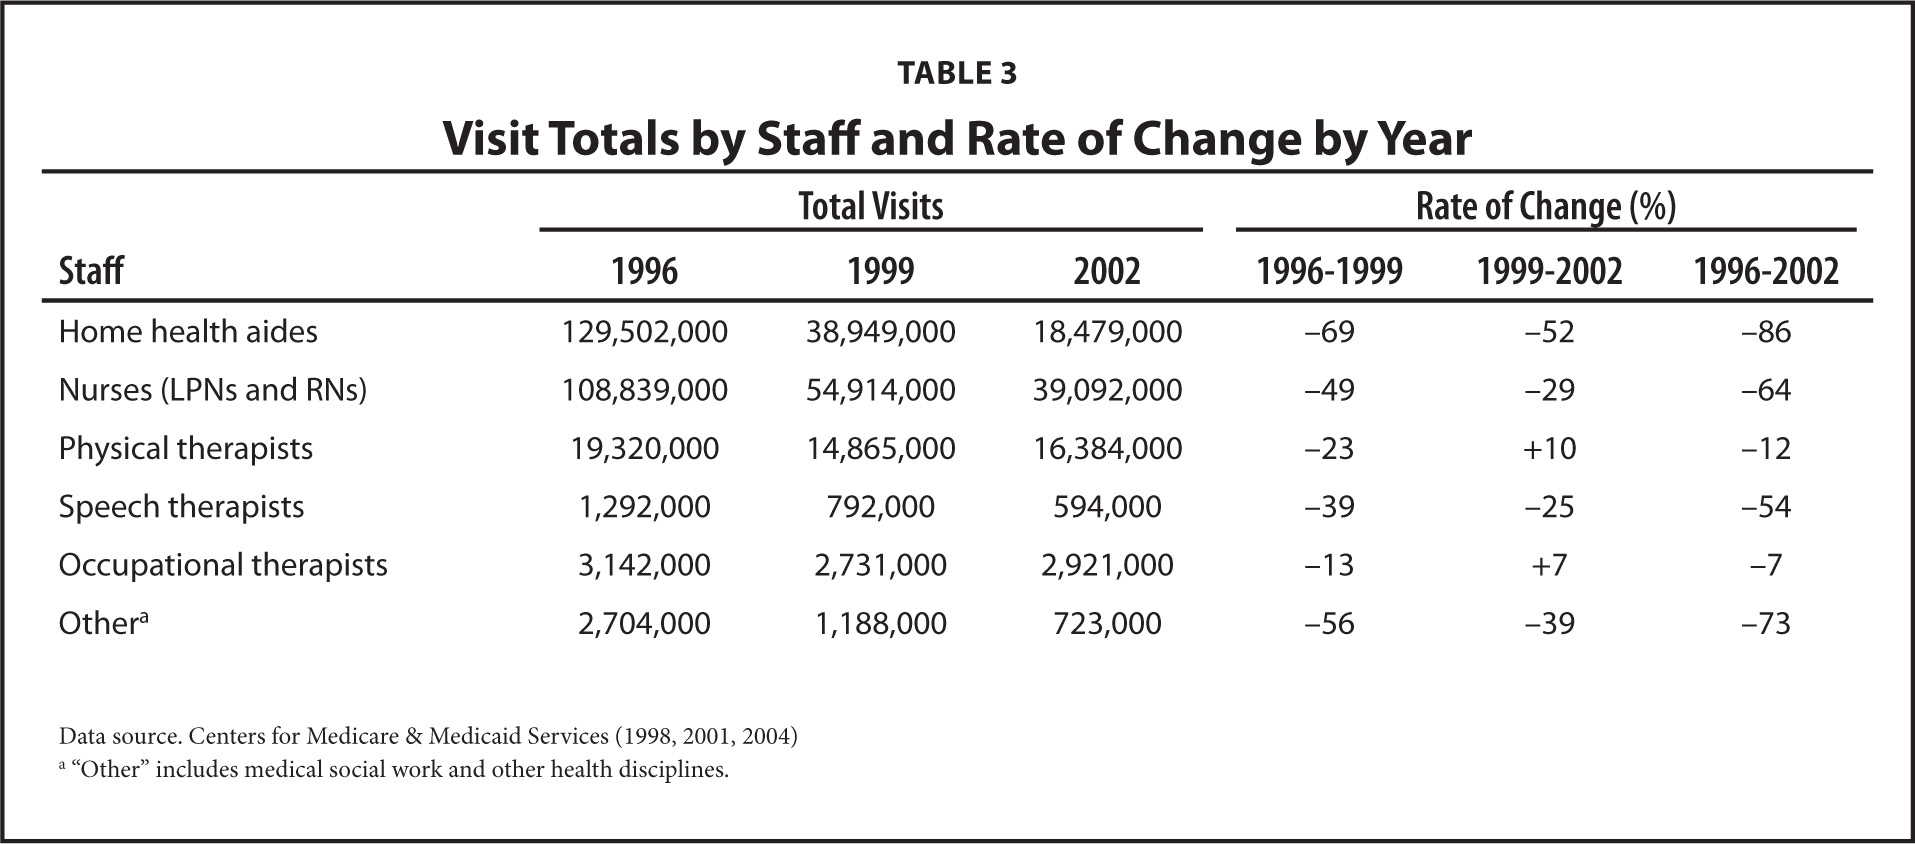 Visit Totals by Staff and Rate of Change by Year